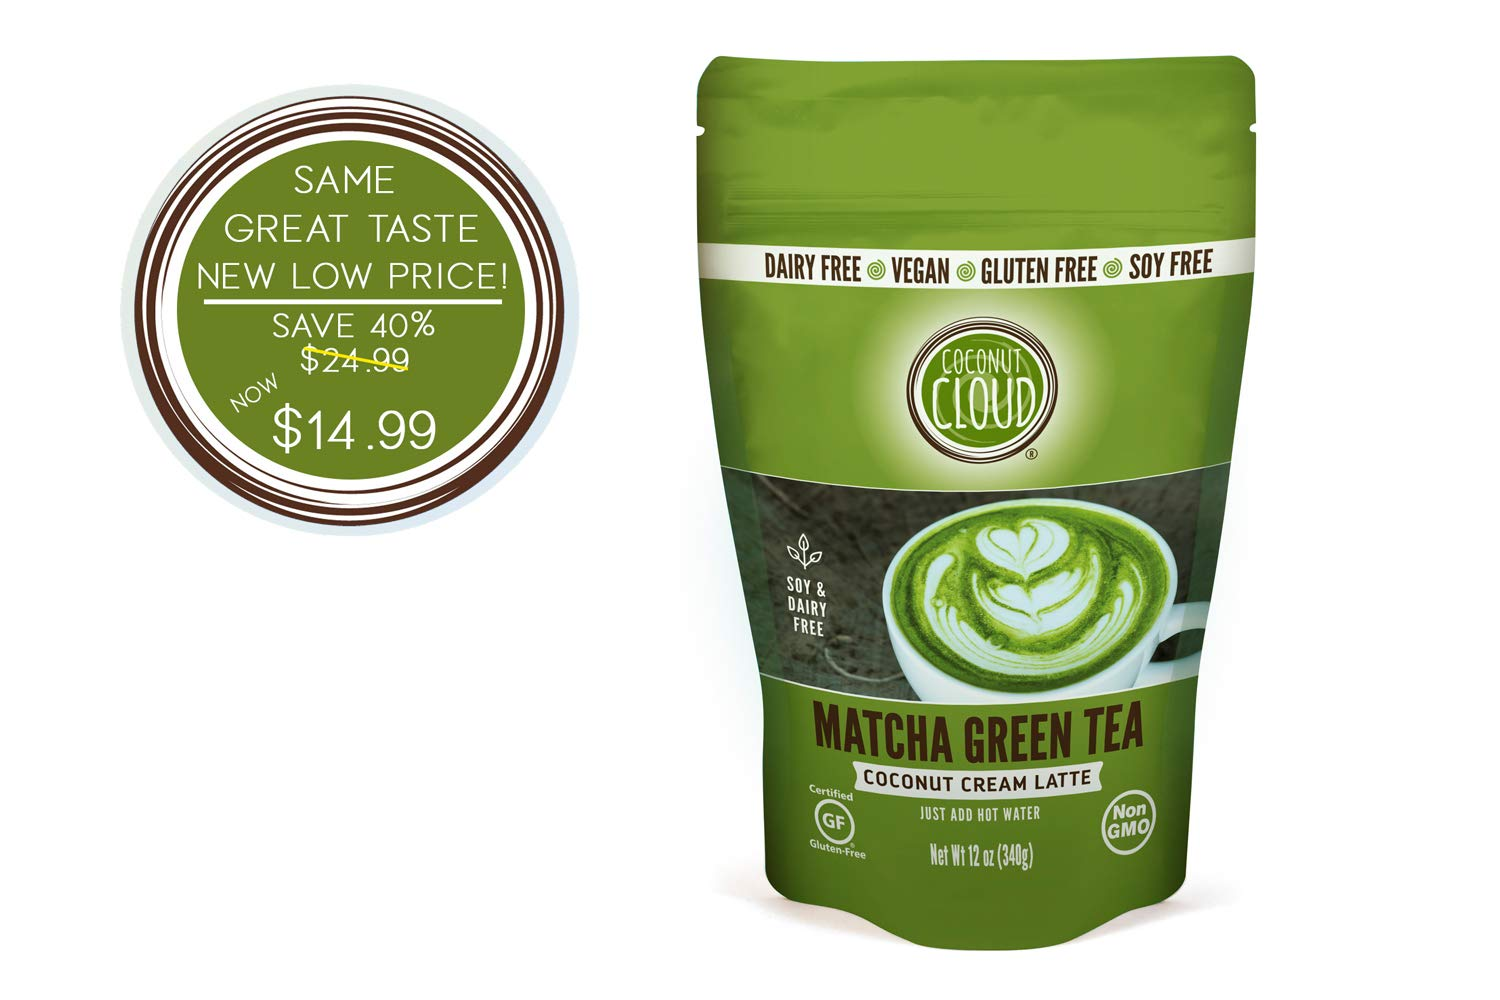 Coconut Cloud: Matcha Green Tea Instant Latte, Just add Water, 21 servings | Made from Japanese Green Tea & Coconut Milk Powder | Delicious, Rich & Creamy (Great in Smoothies & Recipes), 12 oz pouch